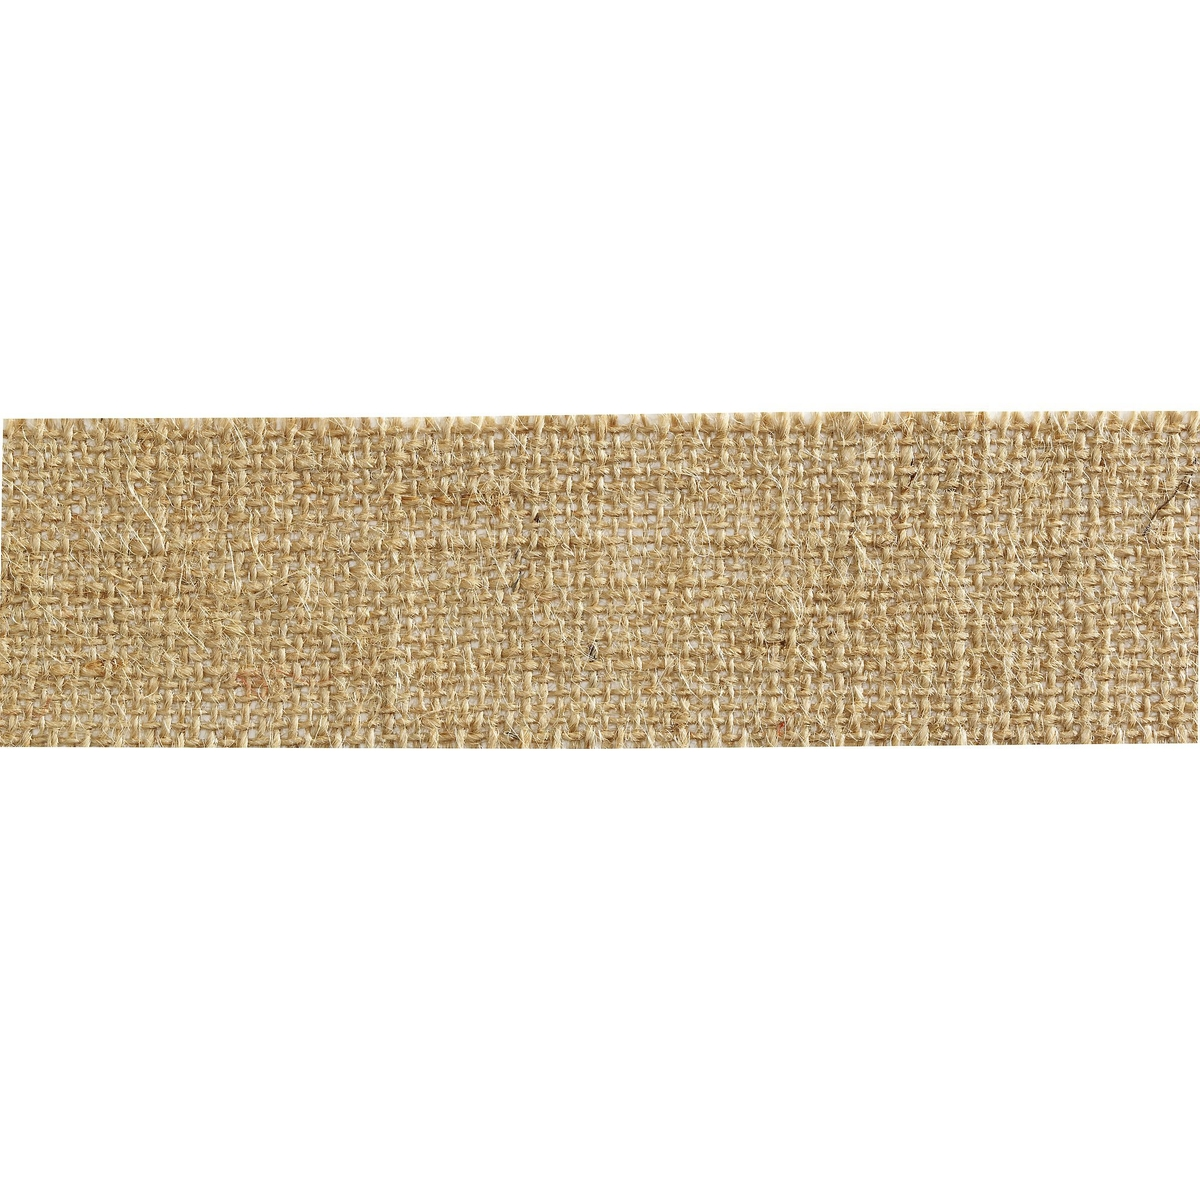 Dekorband jute 40mm/5m natur